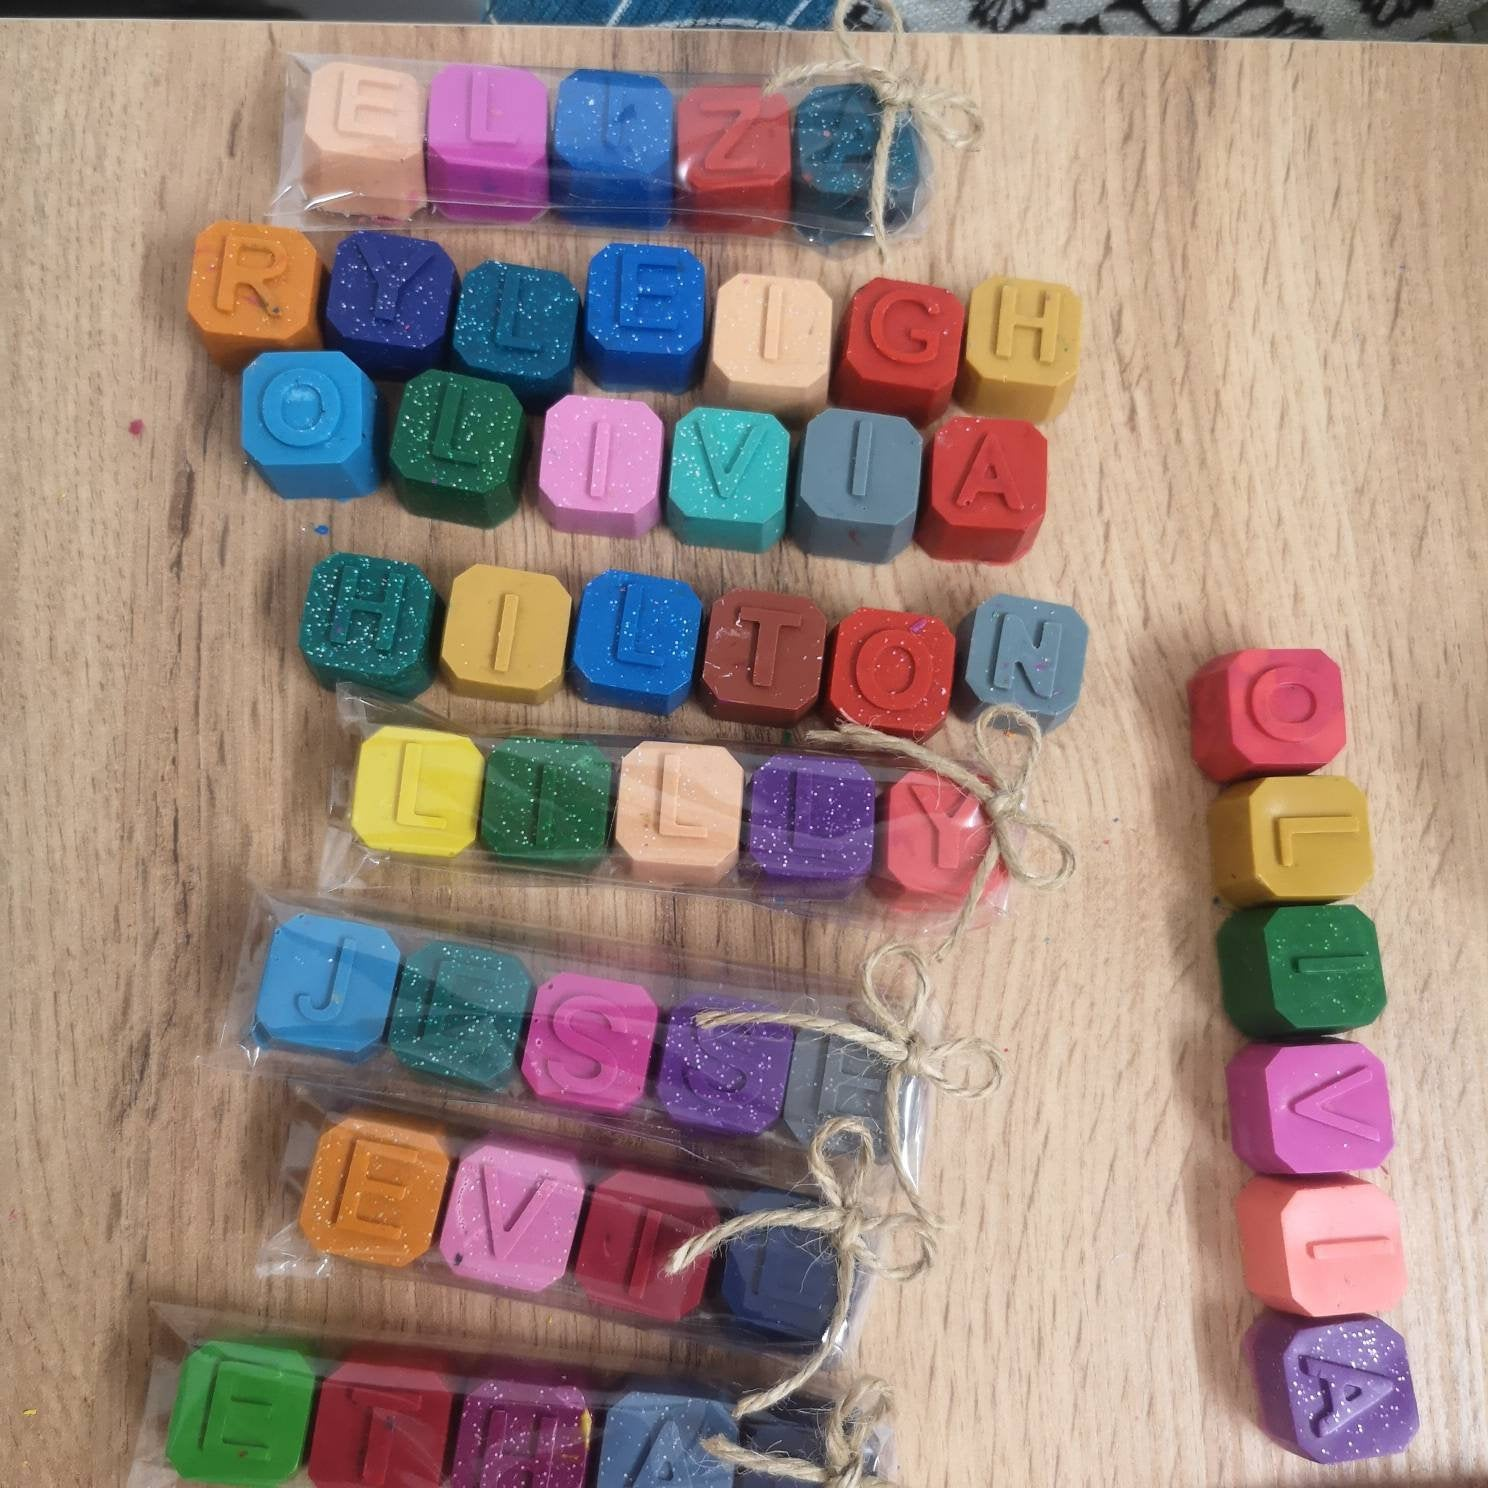 Personalised Cube Letter Crayons - A Great 50p Wedding Favour For The Kids